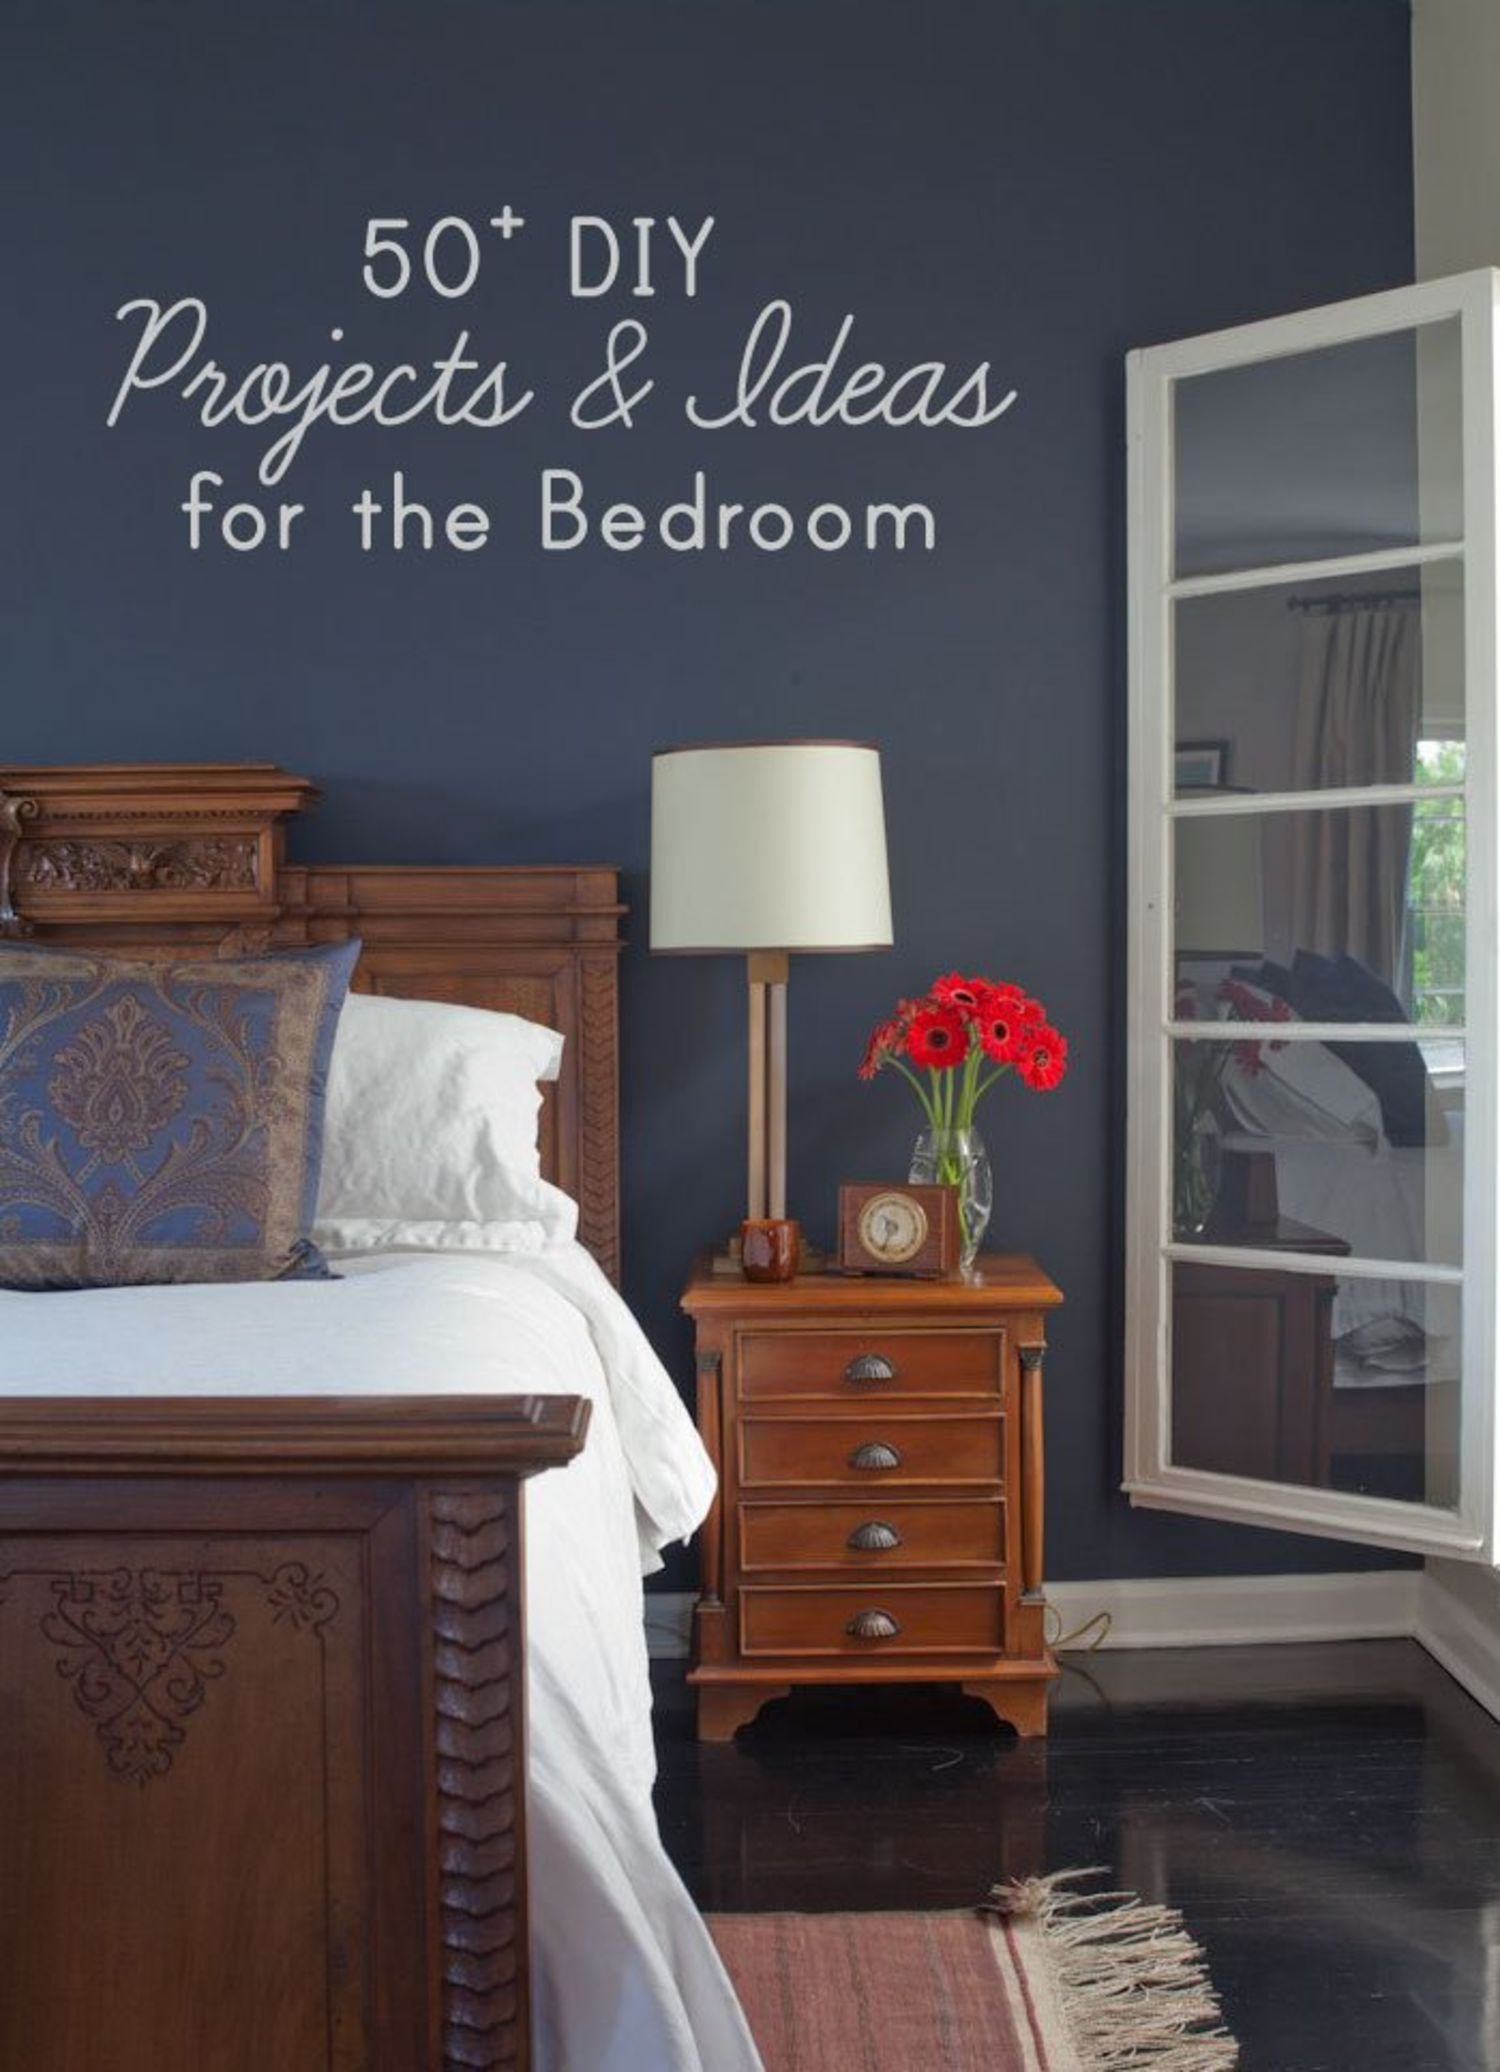 Best 50 Diy Project Ideas For The Bedroom Apartment Therapy With Pictures